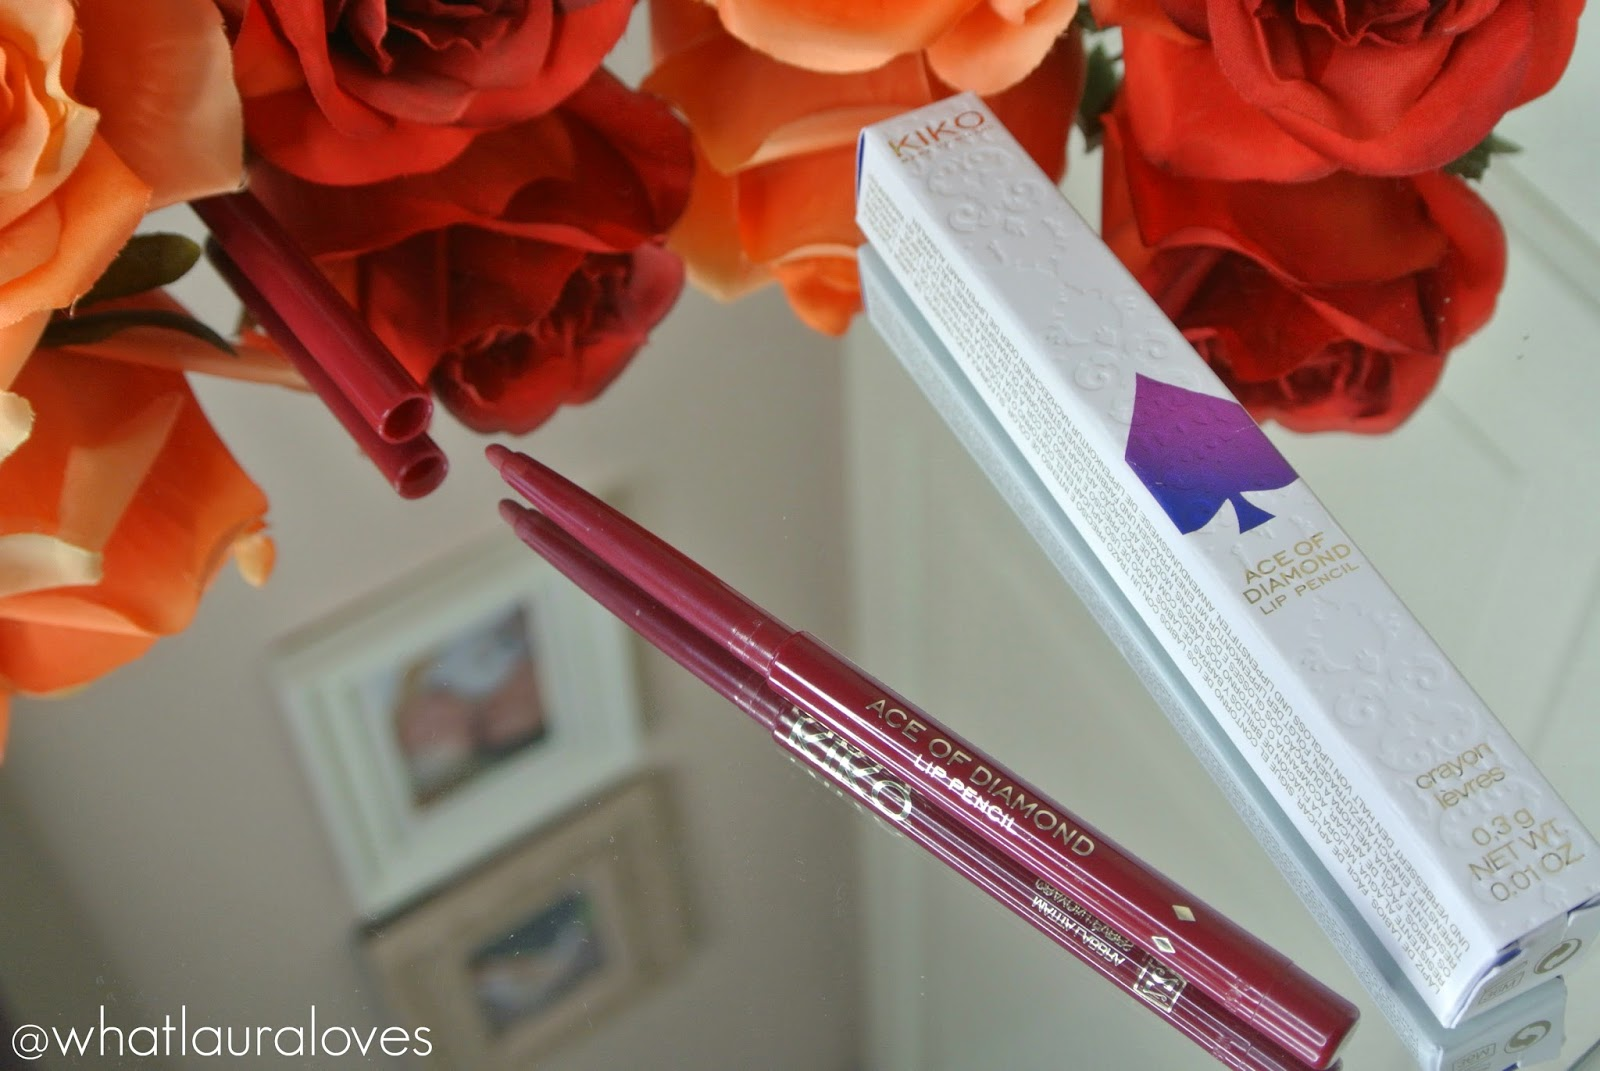 Kiko Ace of Diamond Lip Pencil in 27 Refined Burgundy